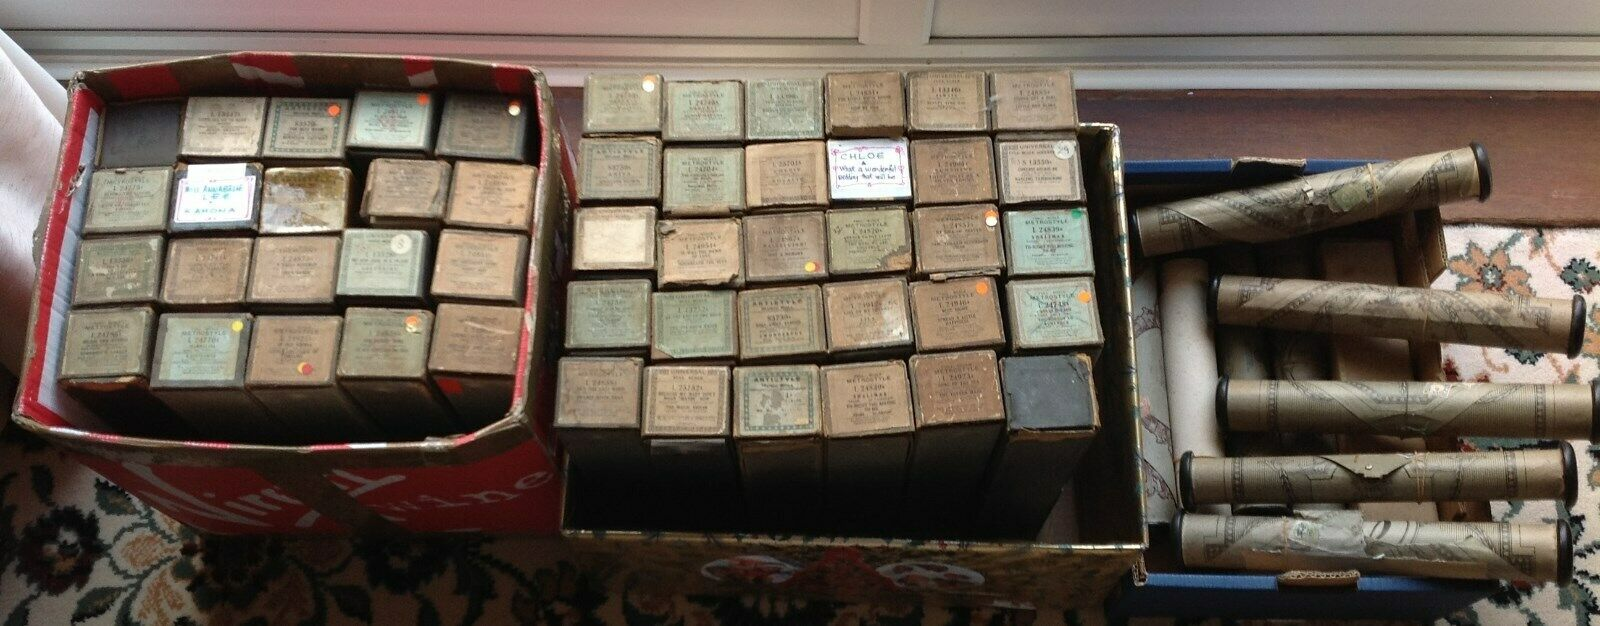 Piano Rolls - 60 Dance pianola rolls - 88 note -COLLECTION ONLY - BOURNEMOUTH